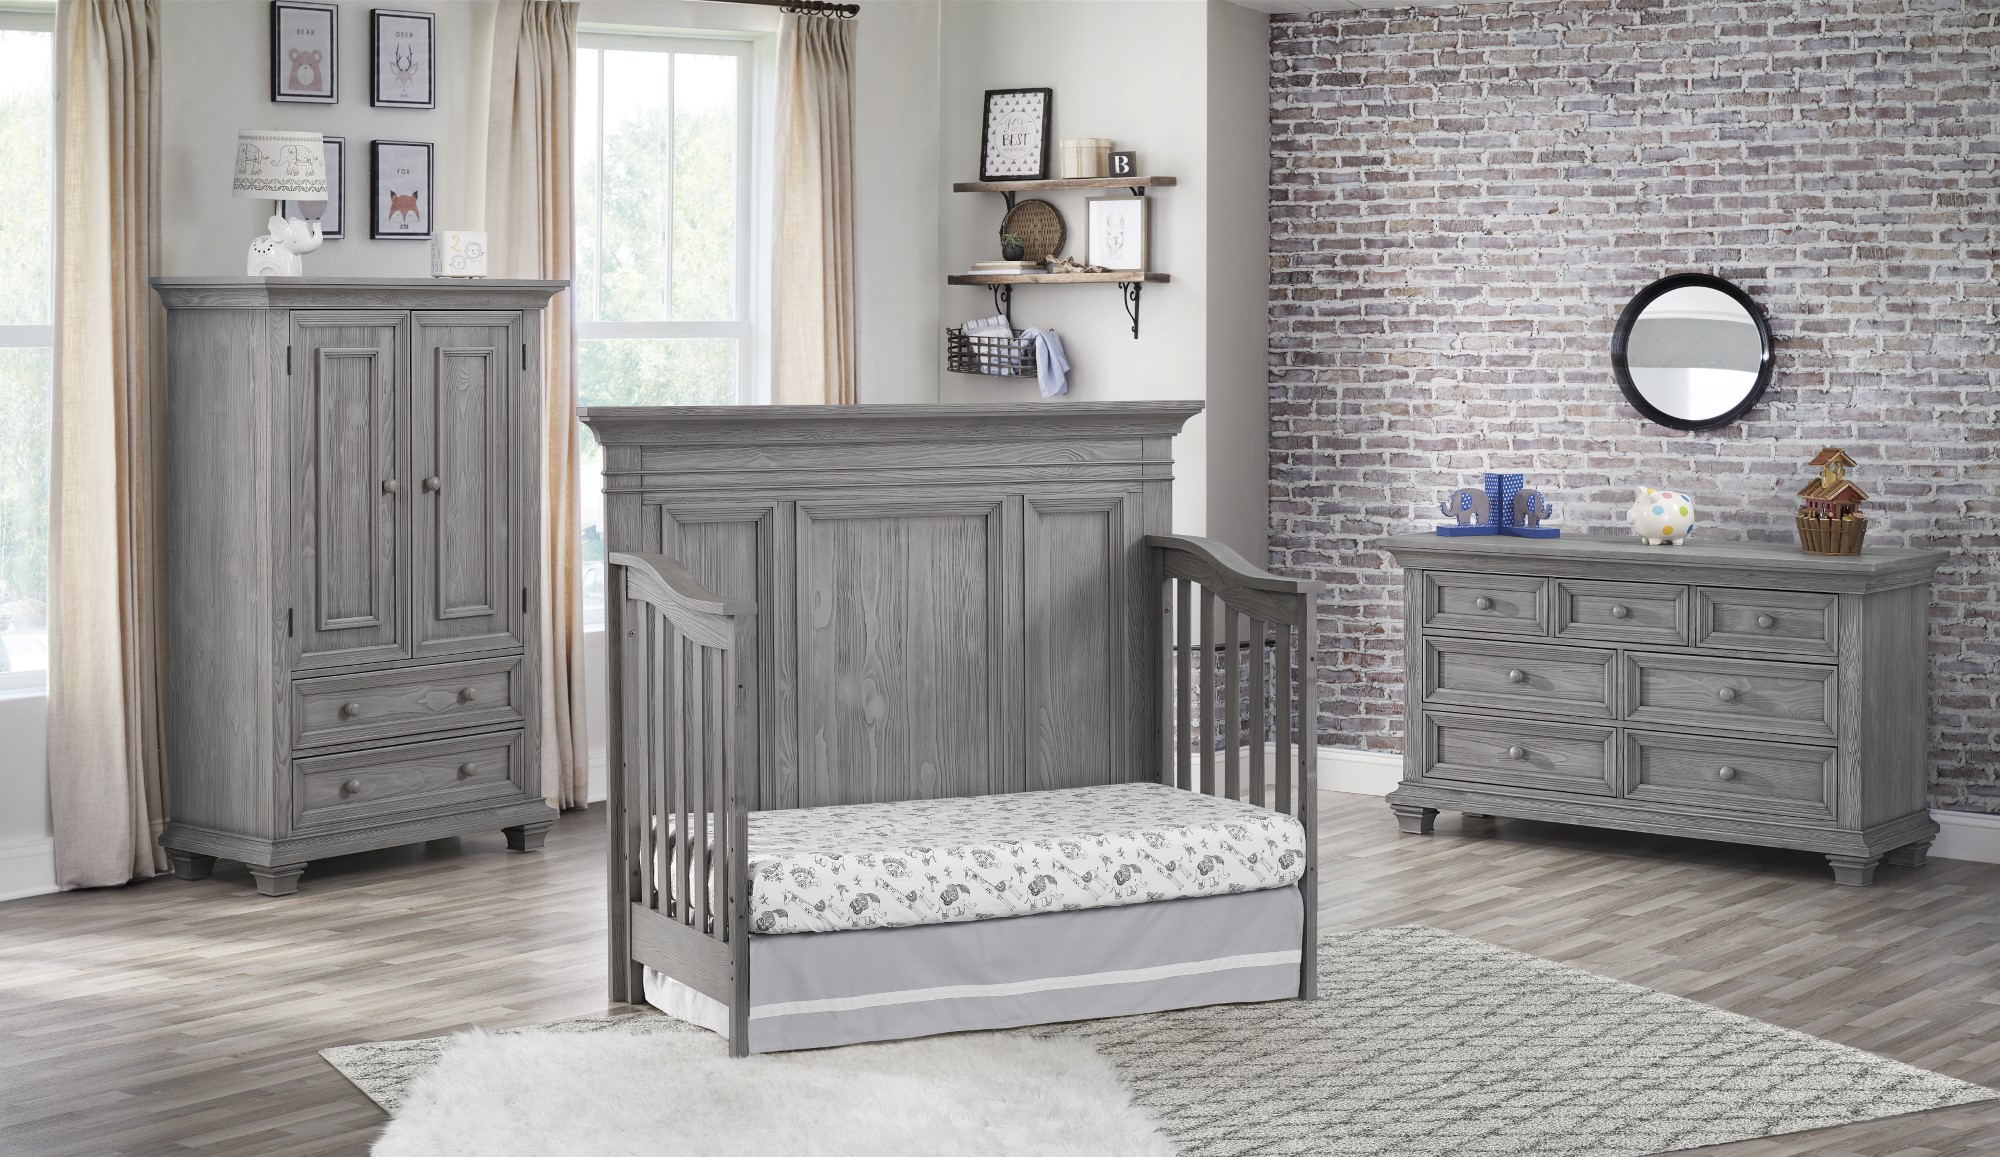 WSPT TB DG CV Day Bed